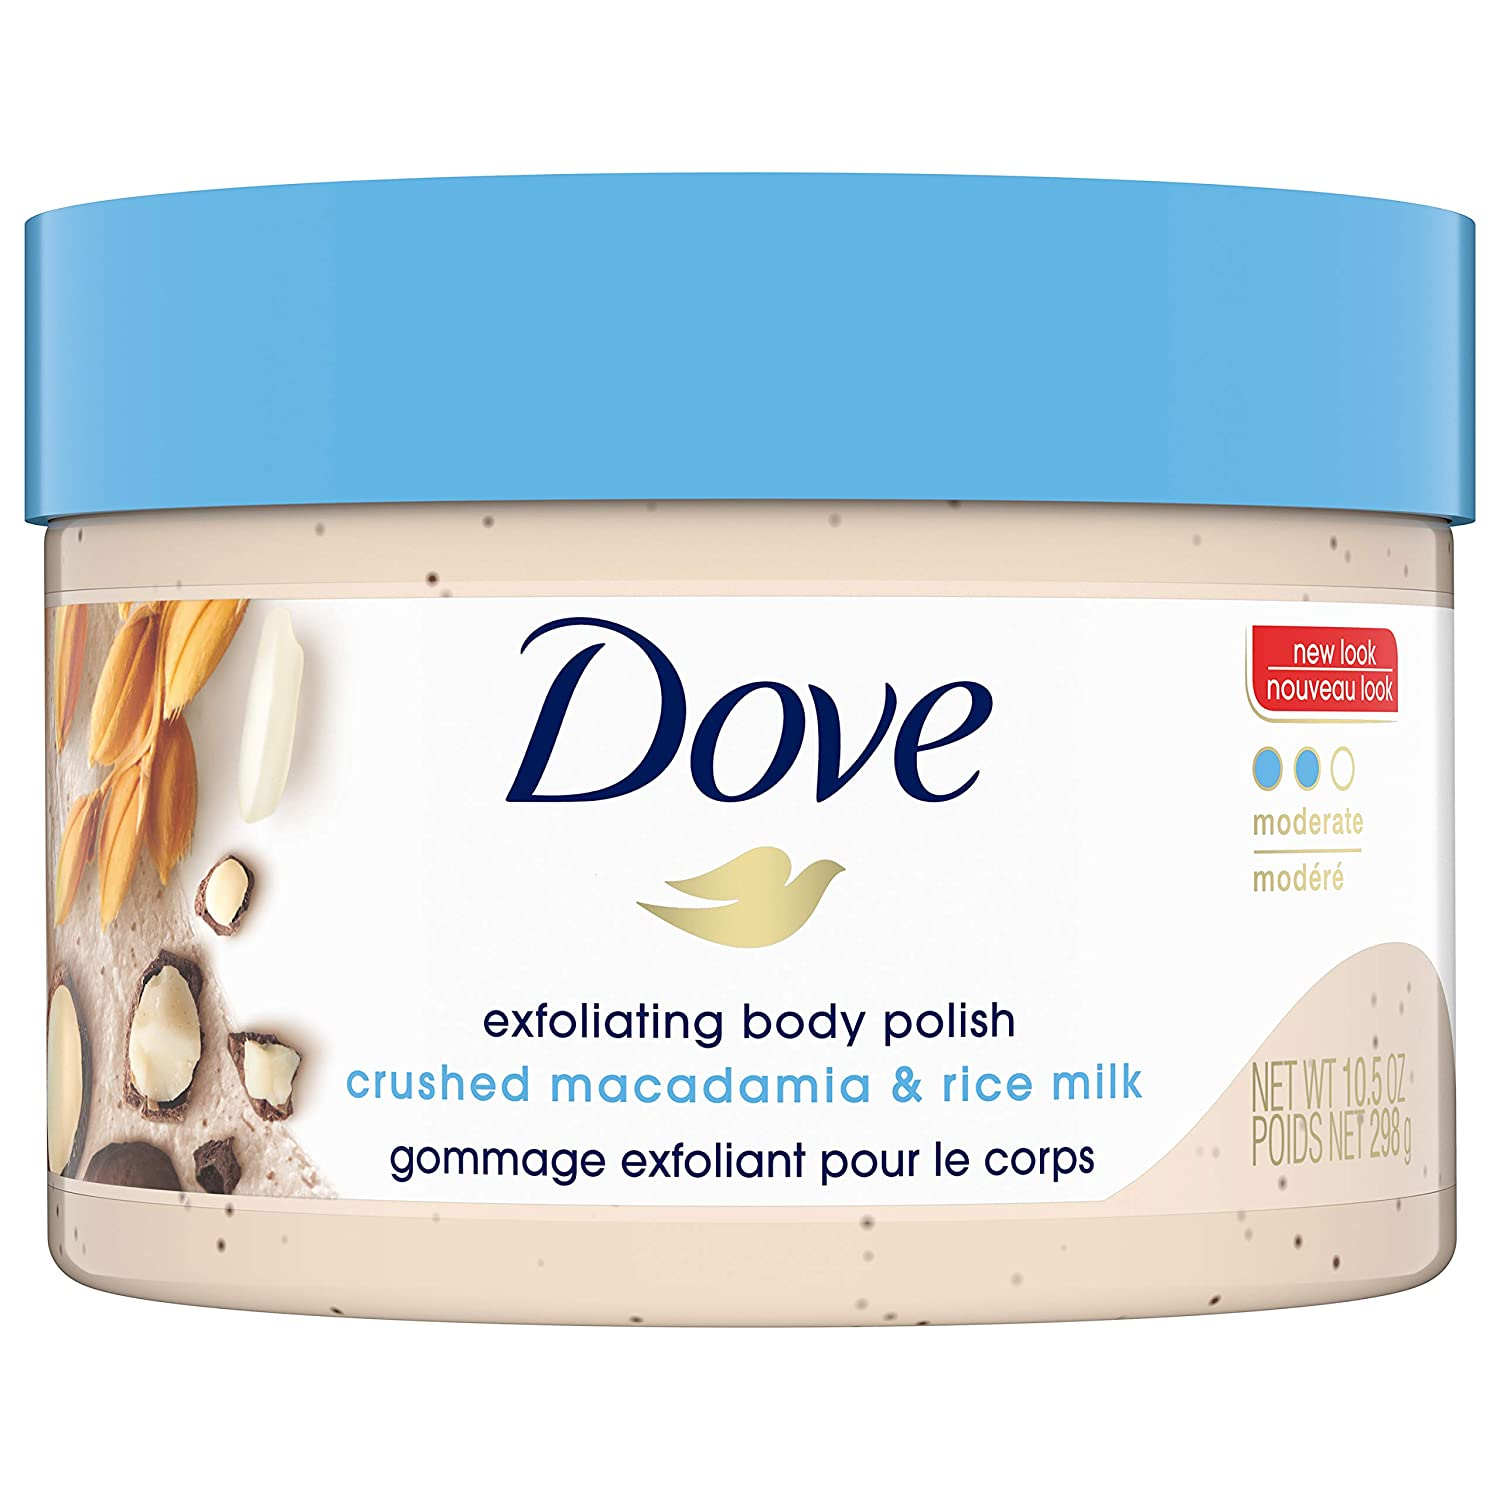 Dove Exfoliating Body Polish Body Scrub To Help Revive Dry, Dull Skin Macadamia & Rice Milk Polishes and Nourishes Your Skin 10.5 oz : Beauty